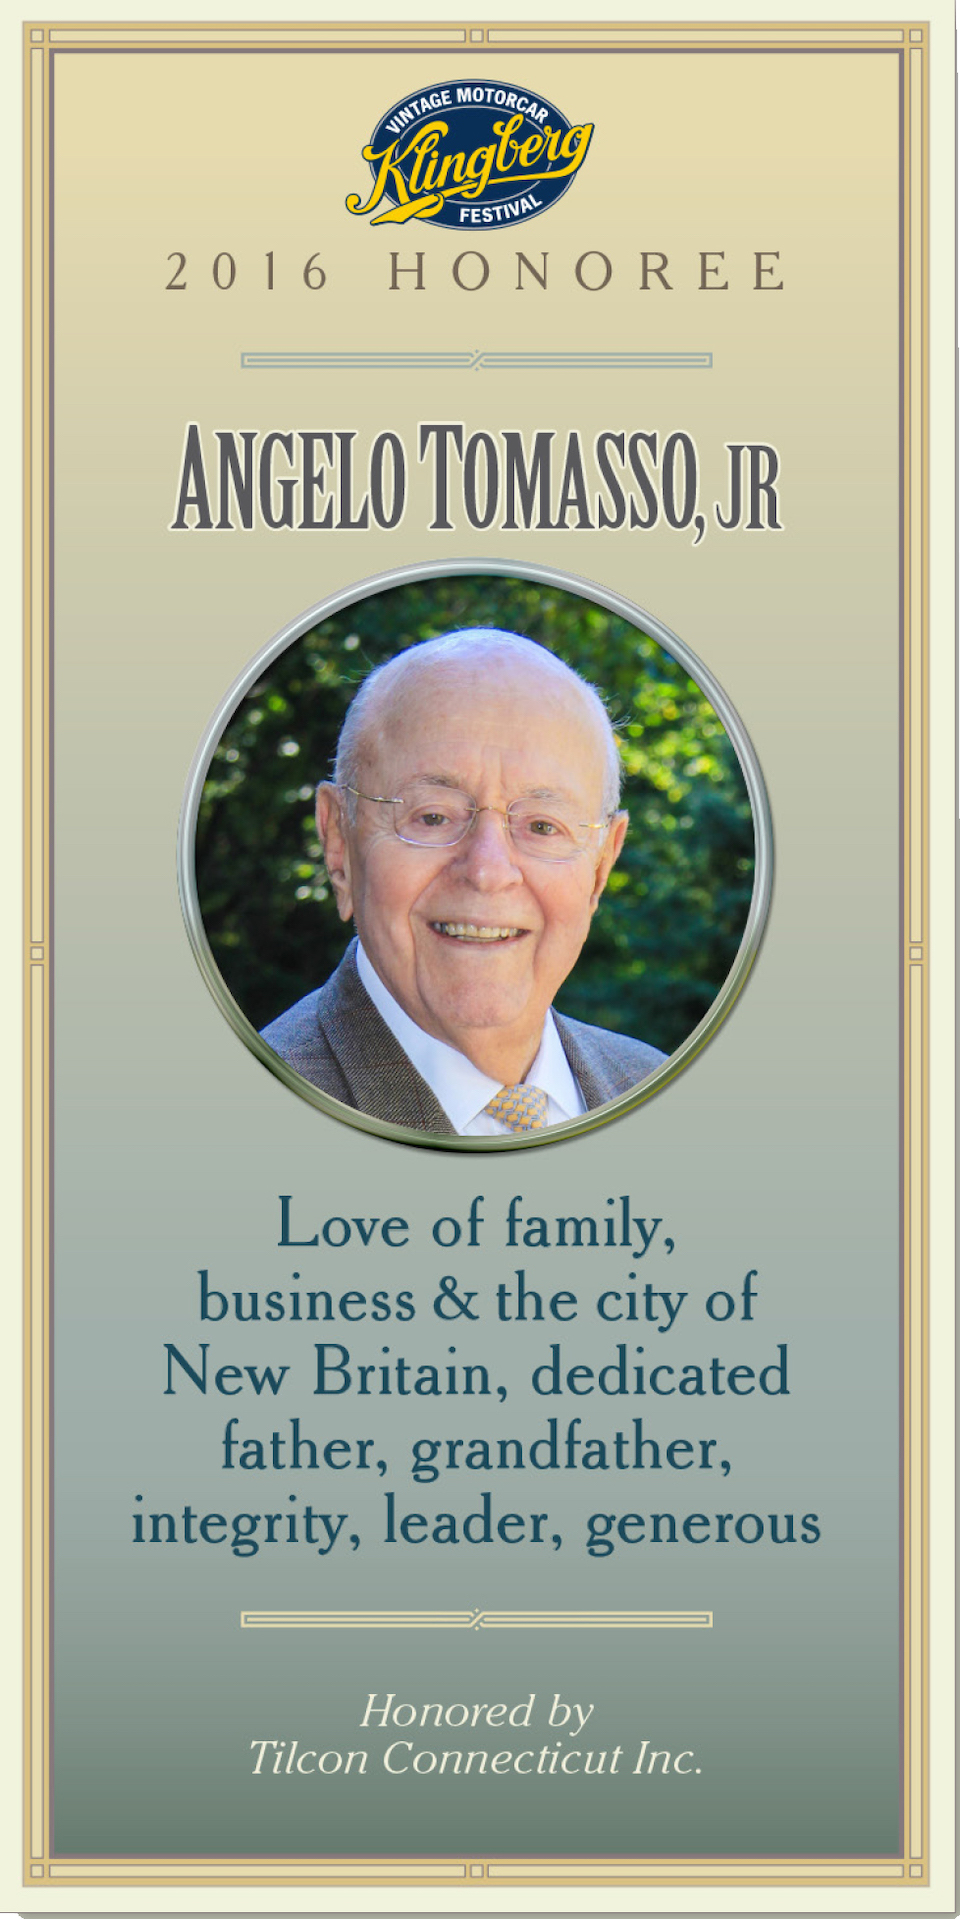 honor-angelo-tomasso